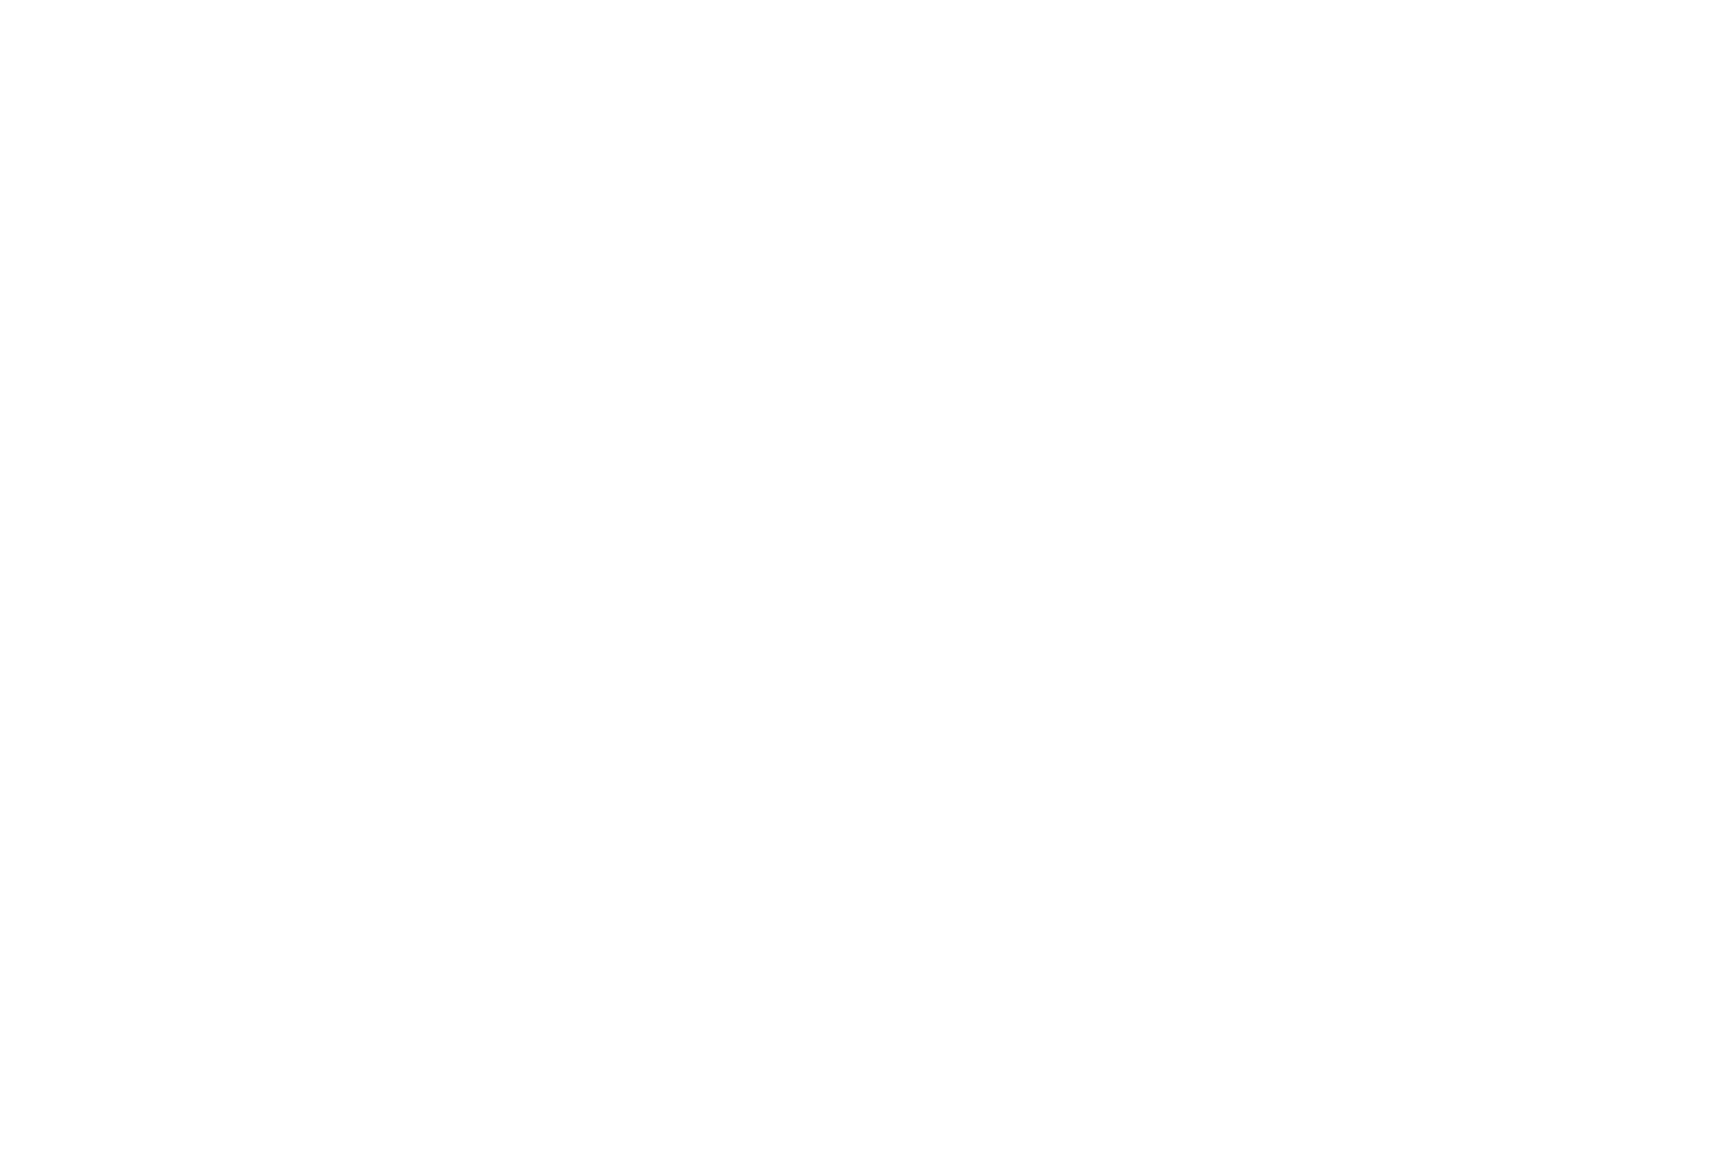 OFFICIAL SELECTION - Red Cedar Film Festival - 2019.png